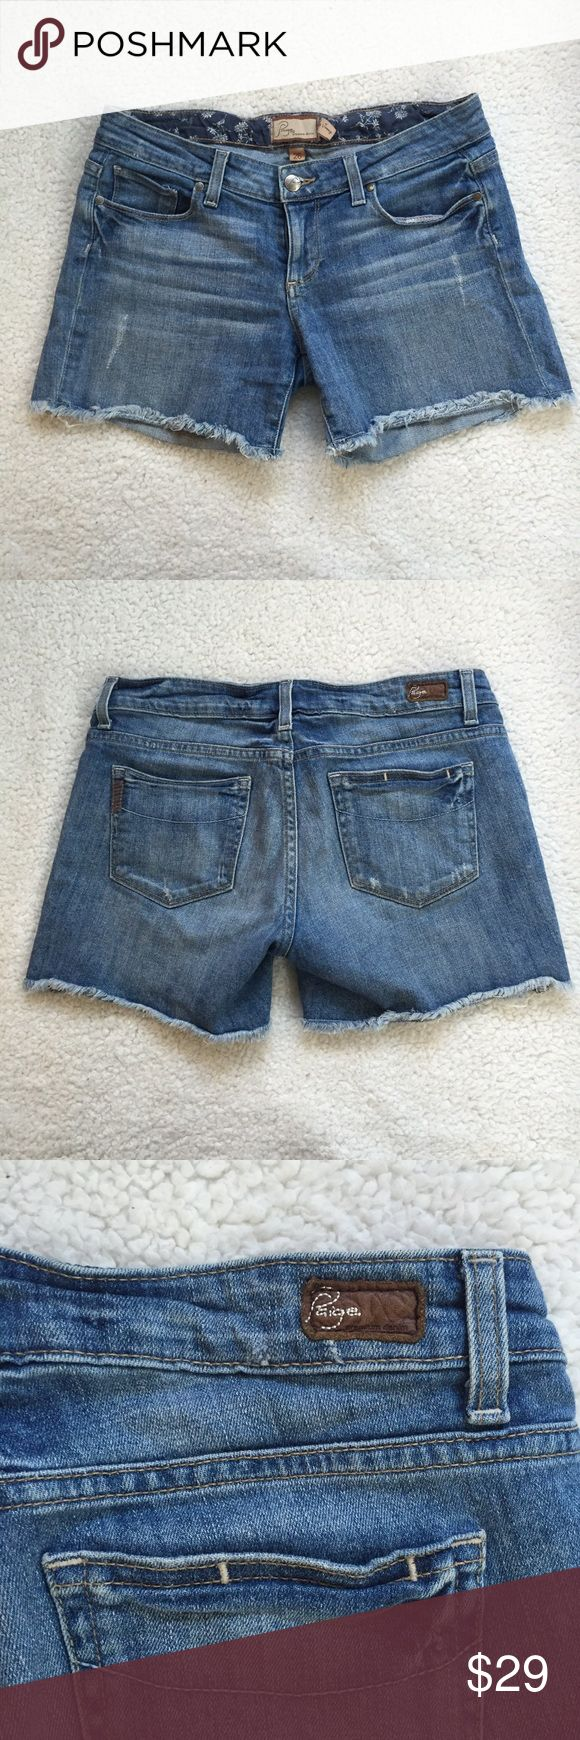 """Paige Jimmy Jimmy Shorts Paige Jimmy Jimmy shorts with frayed hem and distress look both front and back. Inseam is 4"""". I feel like they run big or maybe they are meant to fit looser. Paige Jeans Shorts Jean Shorts"""